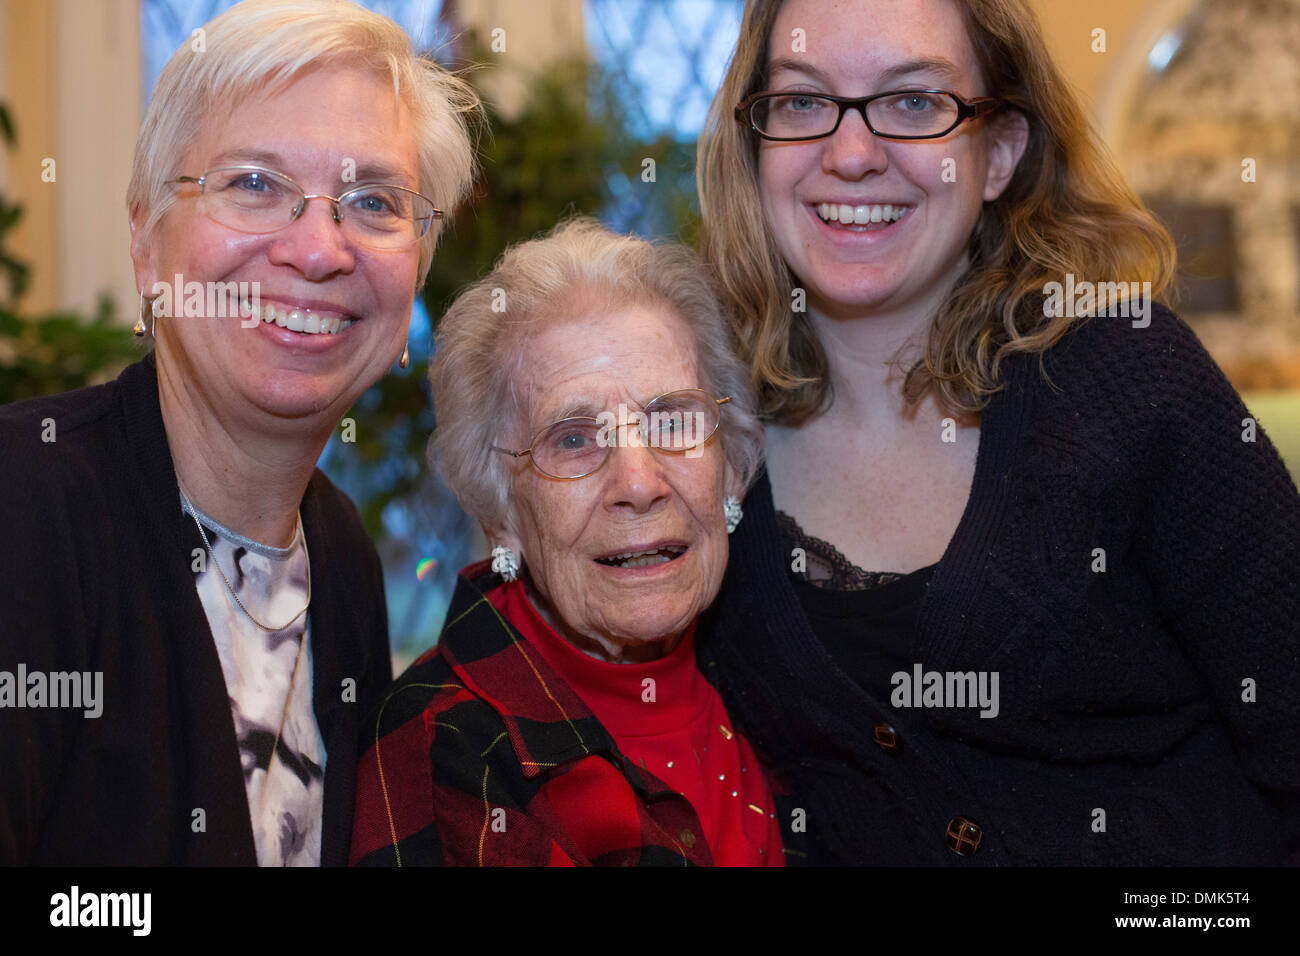 Three generations of women in the same family. - Stock Image